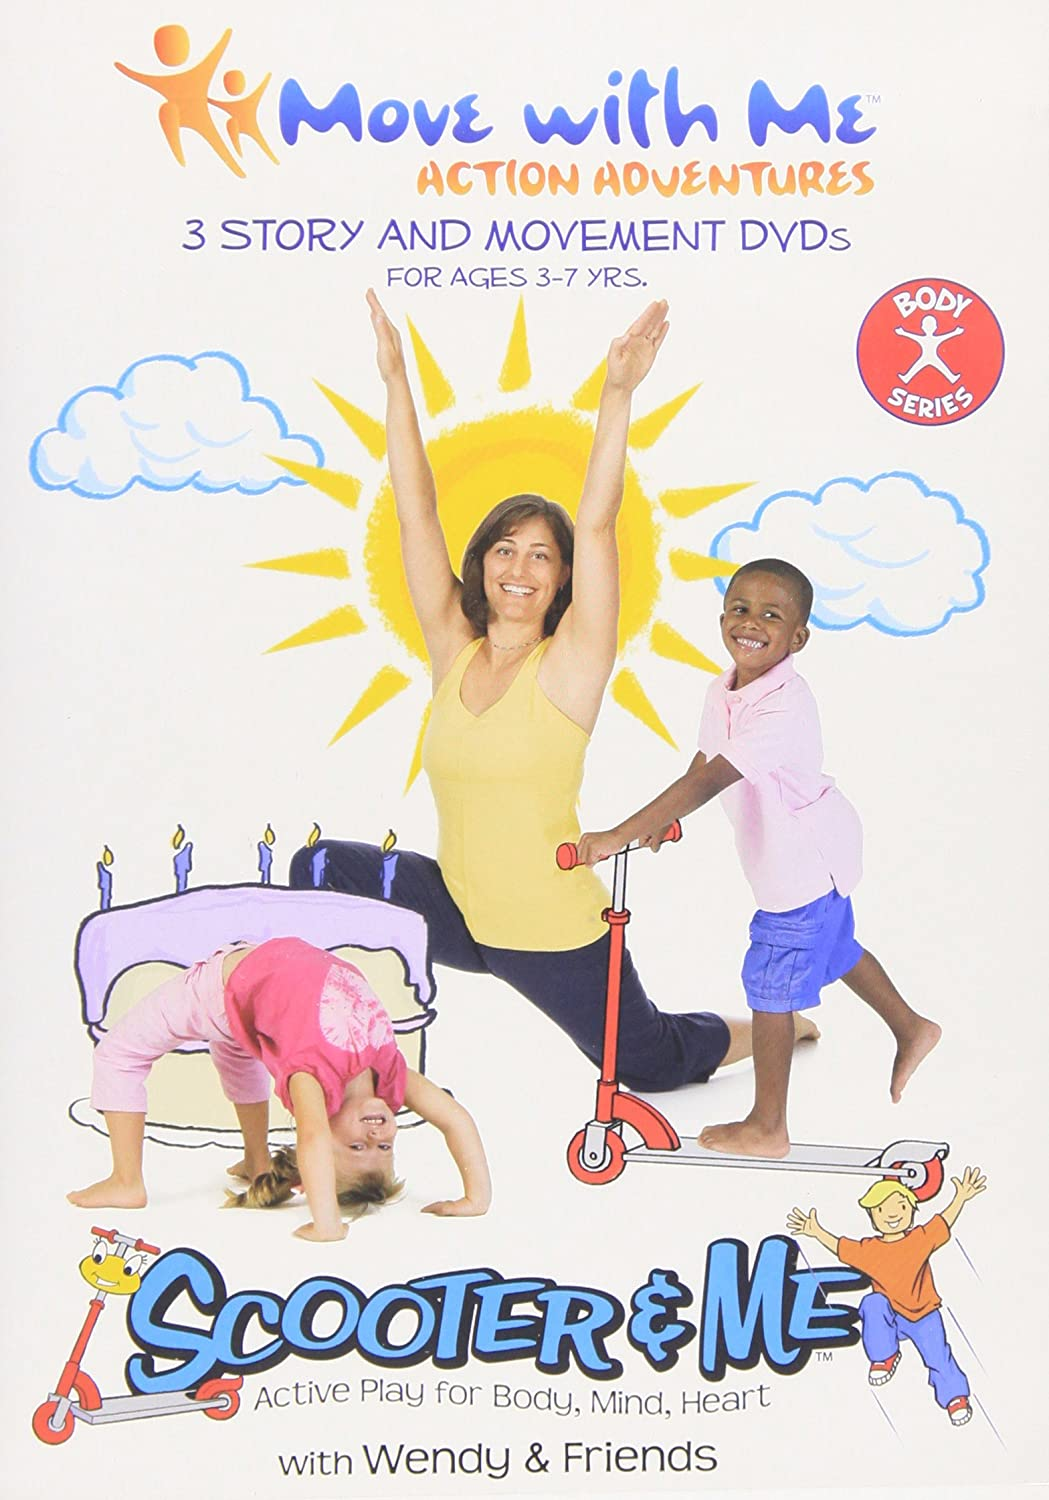 Amazon.com: Kids Yoga DVDs – Scooter & Me Body Series (Set ...